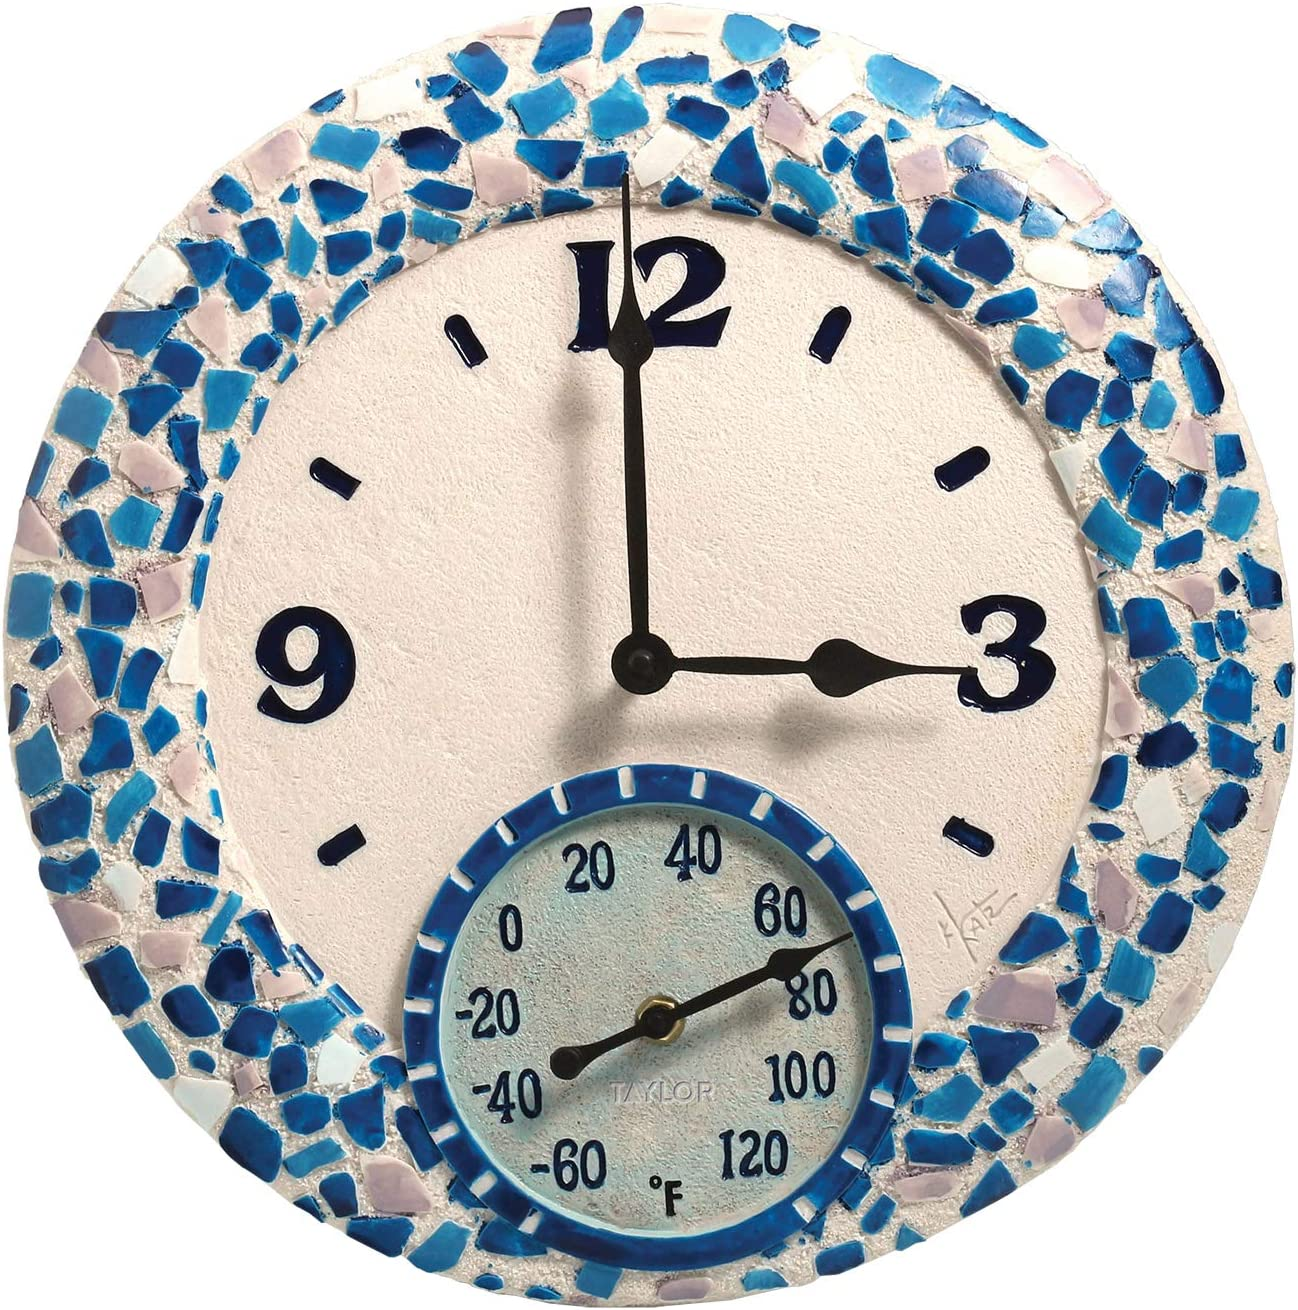 Taylor Precision Products cheap Mosaic Sea with Clock 14